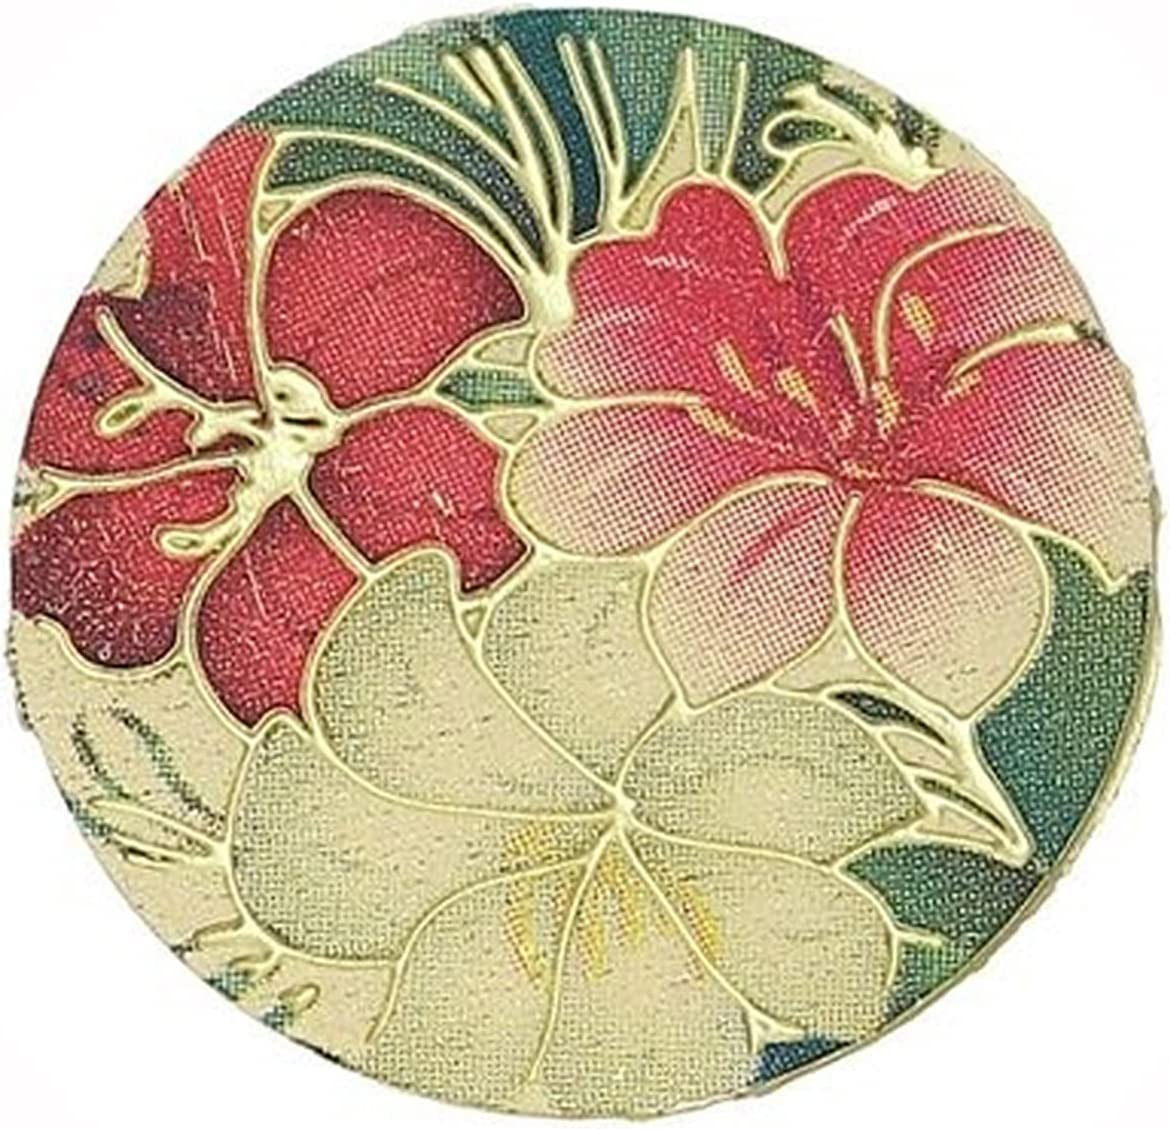 New Tropical Flowers Gold Plated Plate Floating Disc quality assurance Charm 20mm Sales of SALE items from new works